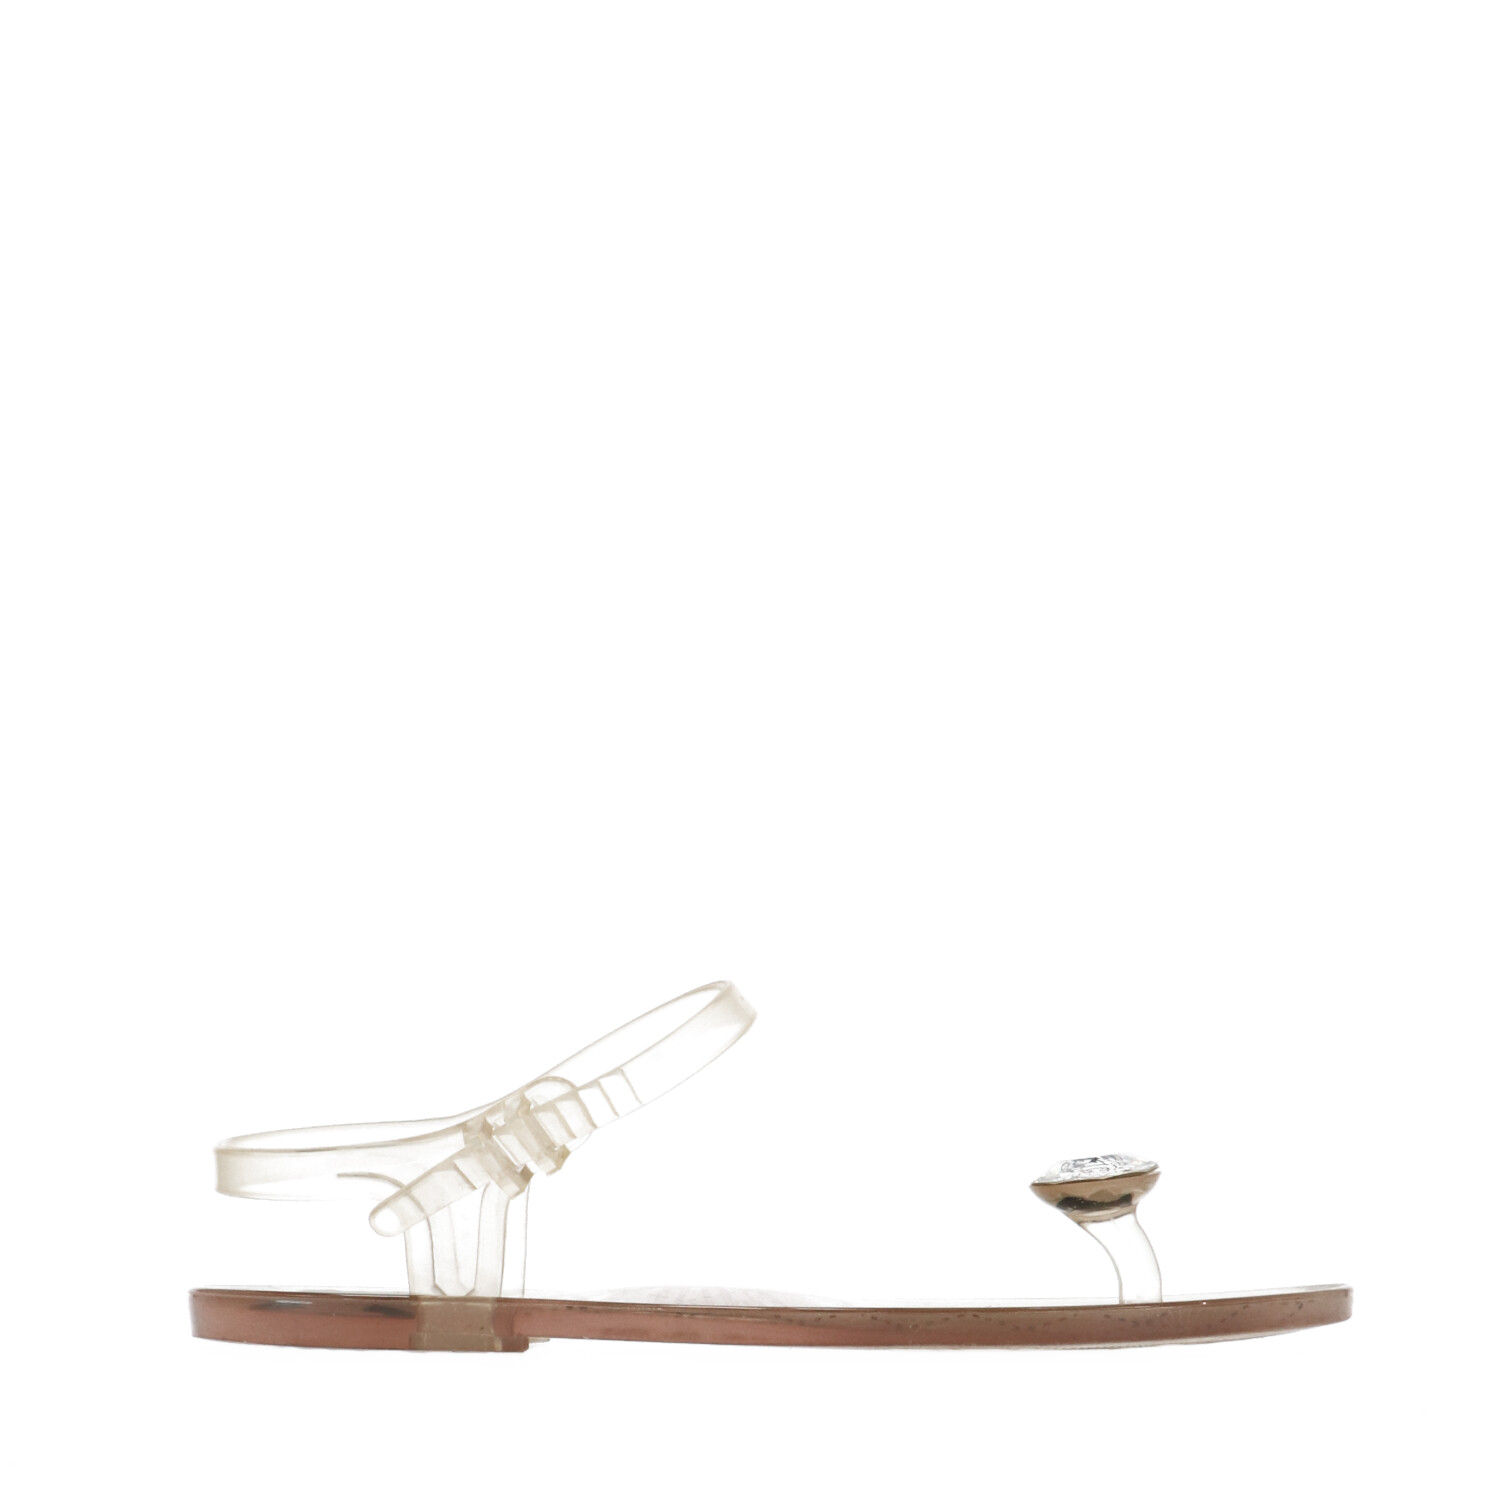 Chanel White Transparent Vinyl Sandals